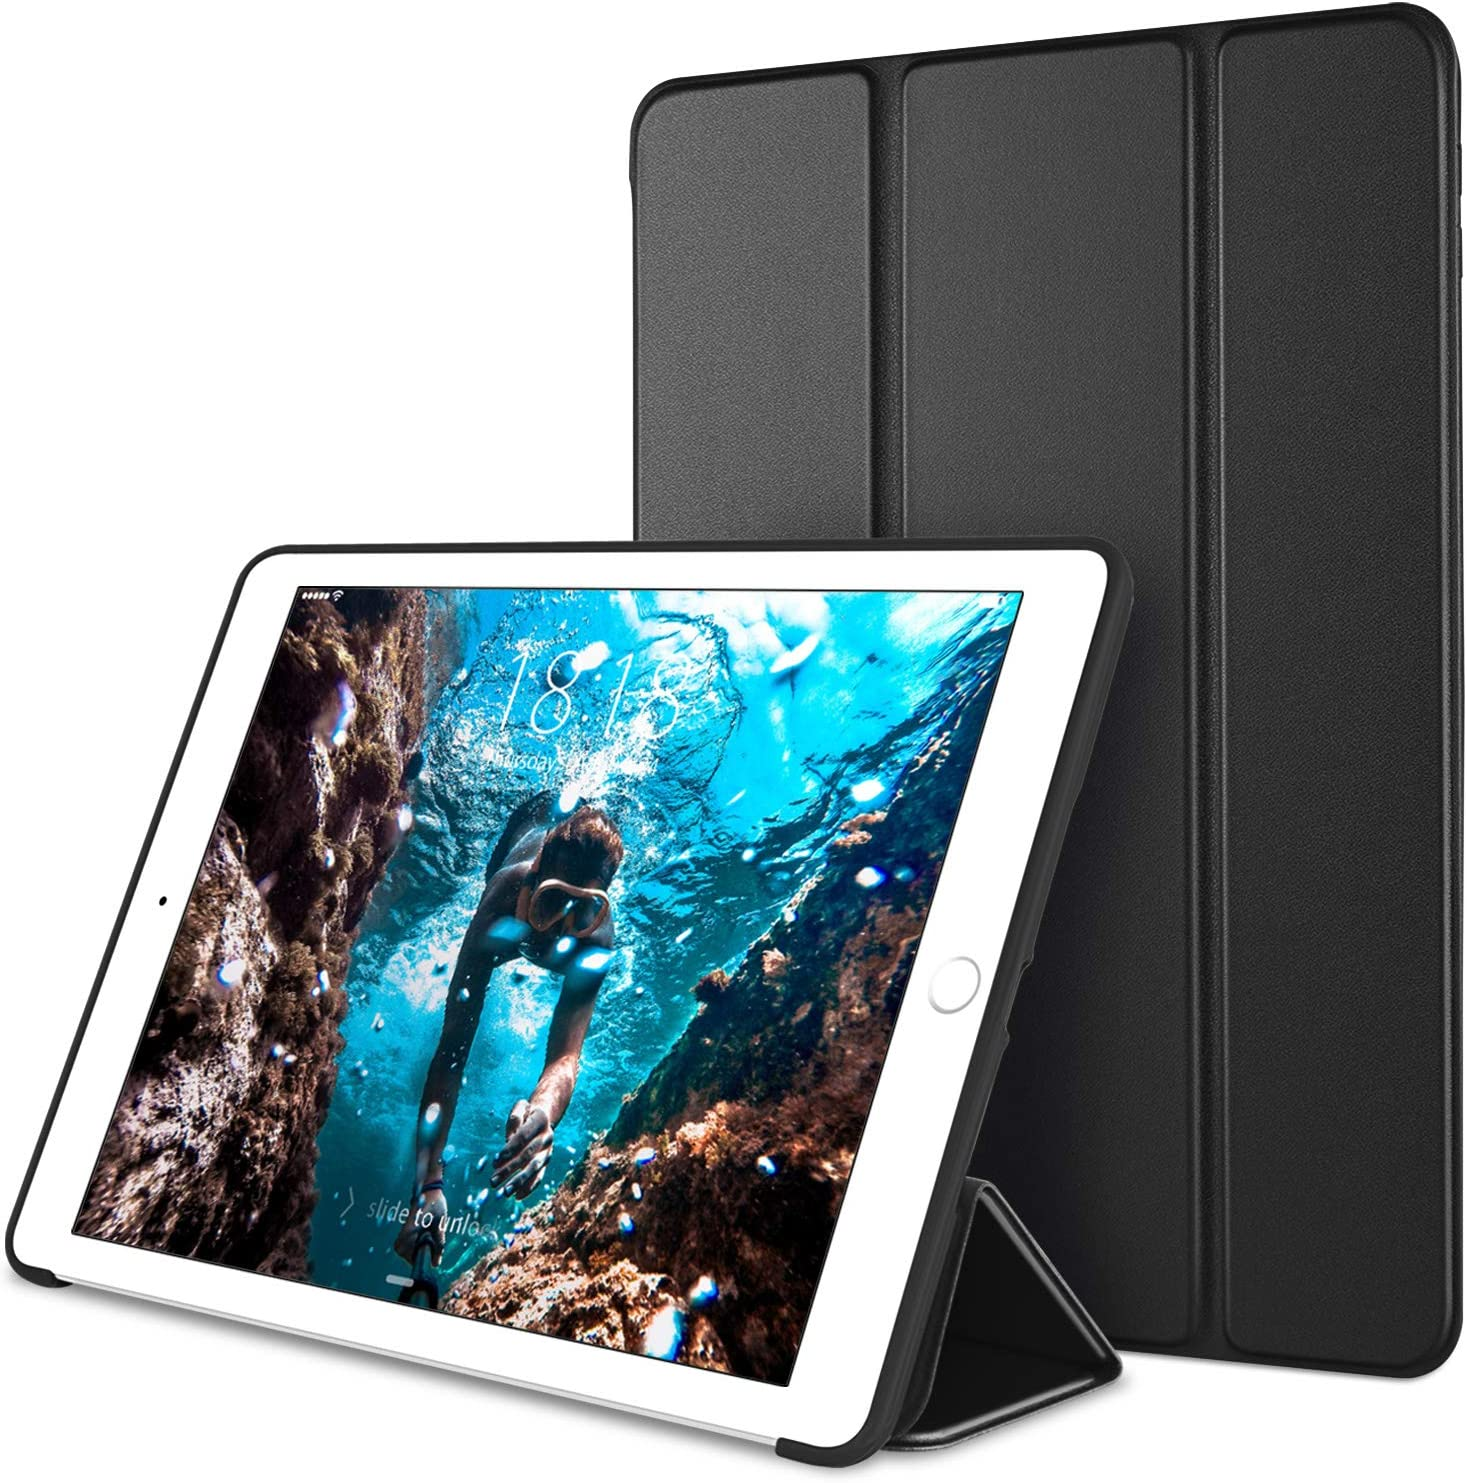 DTTO Case for iPad Mini 4,(Not Compatible with Mini 5th Generation 2019) Ultra Slim Lightweight[Auto Sleep/Wake] Smart Case Trifold Cover Stand with Flexible Soft TPU Back Cover for iPad mini4, Black